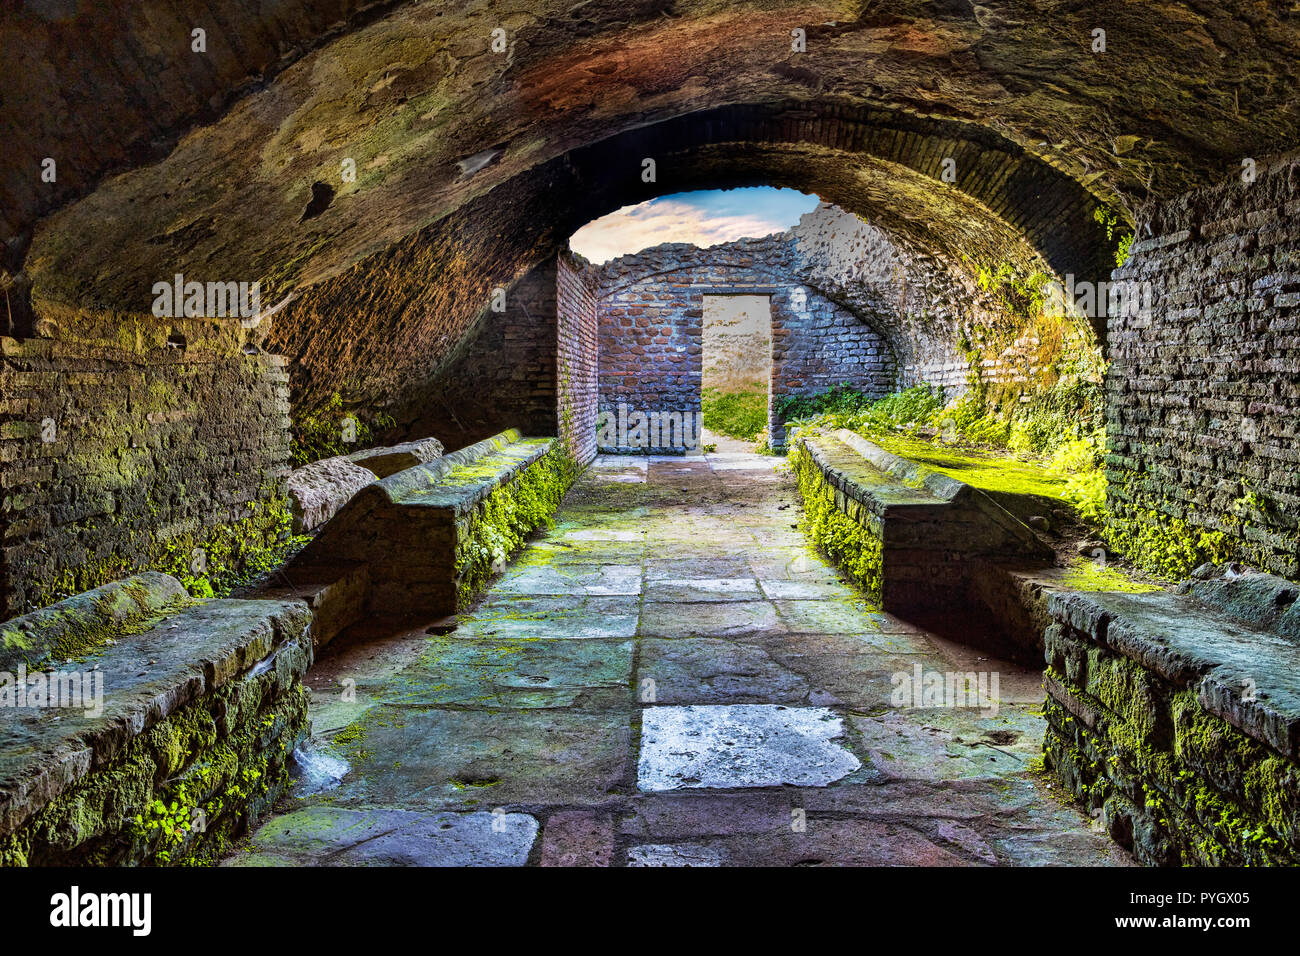 Looking at the exit inside the thermal's mithraeum in archaeological excavations of Ostia Antica - Rome - Stock Image